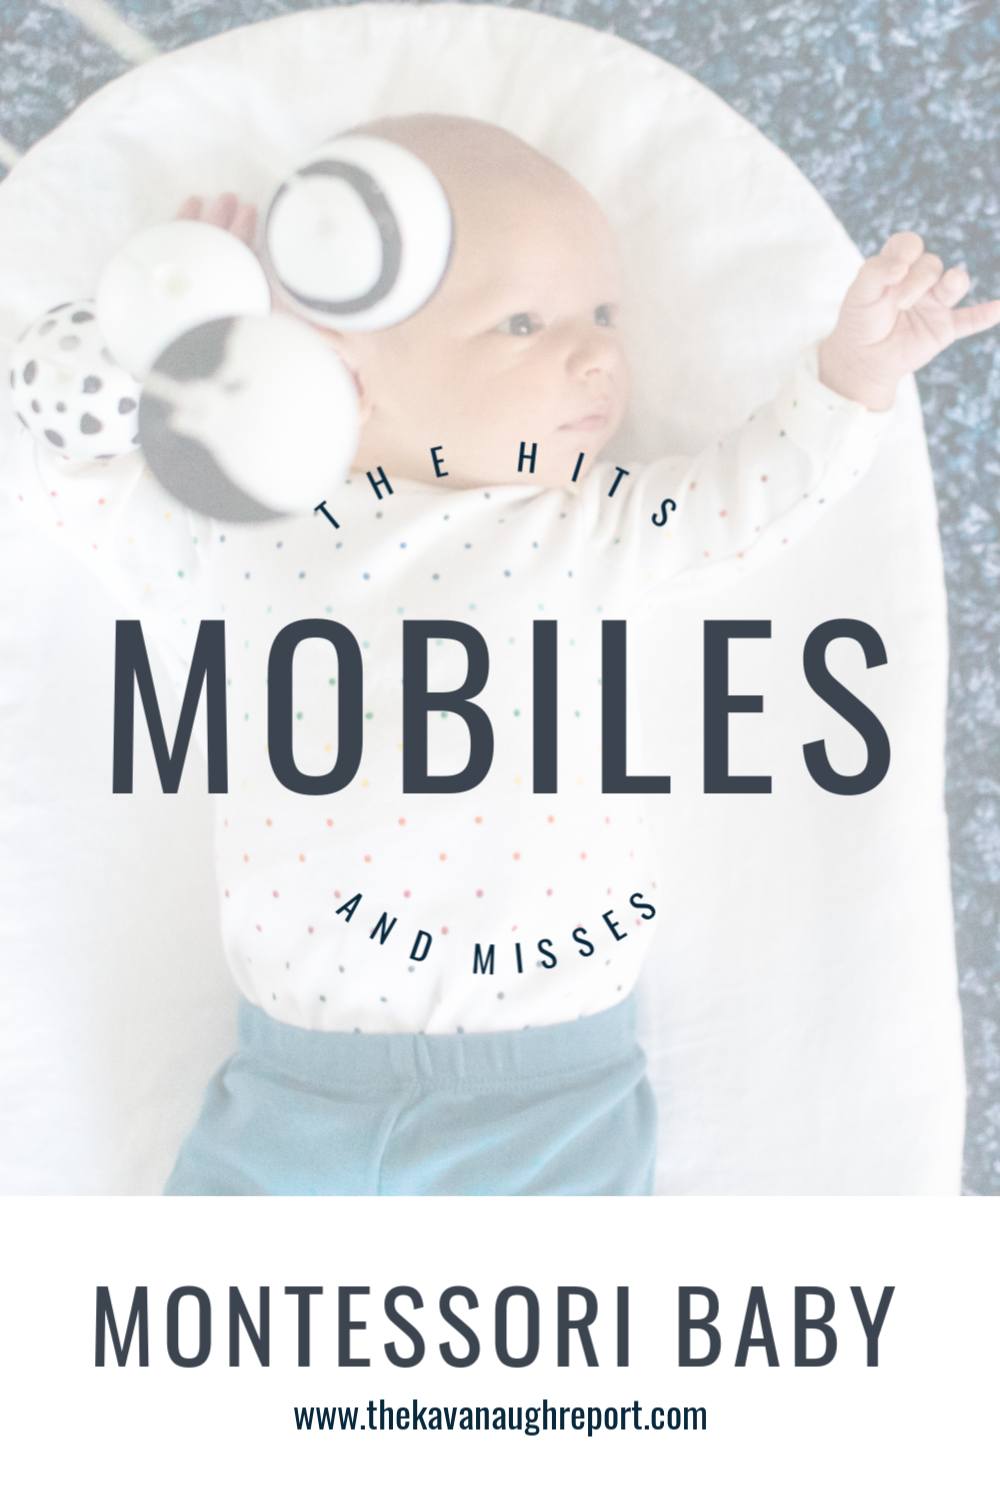 A look at the Montessori baby mobiles and which were hits and misses in our family